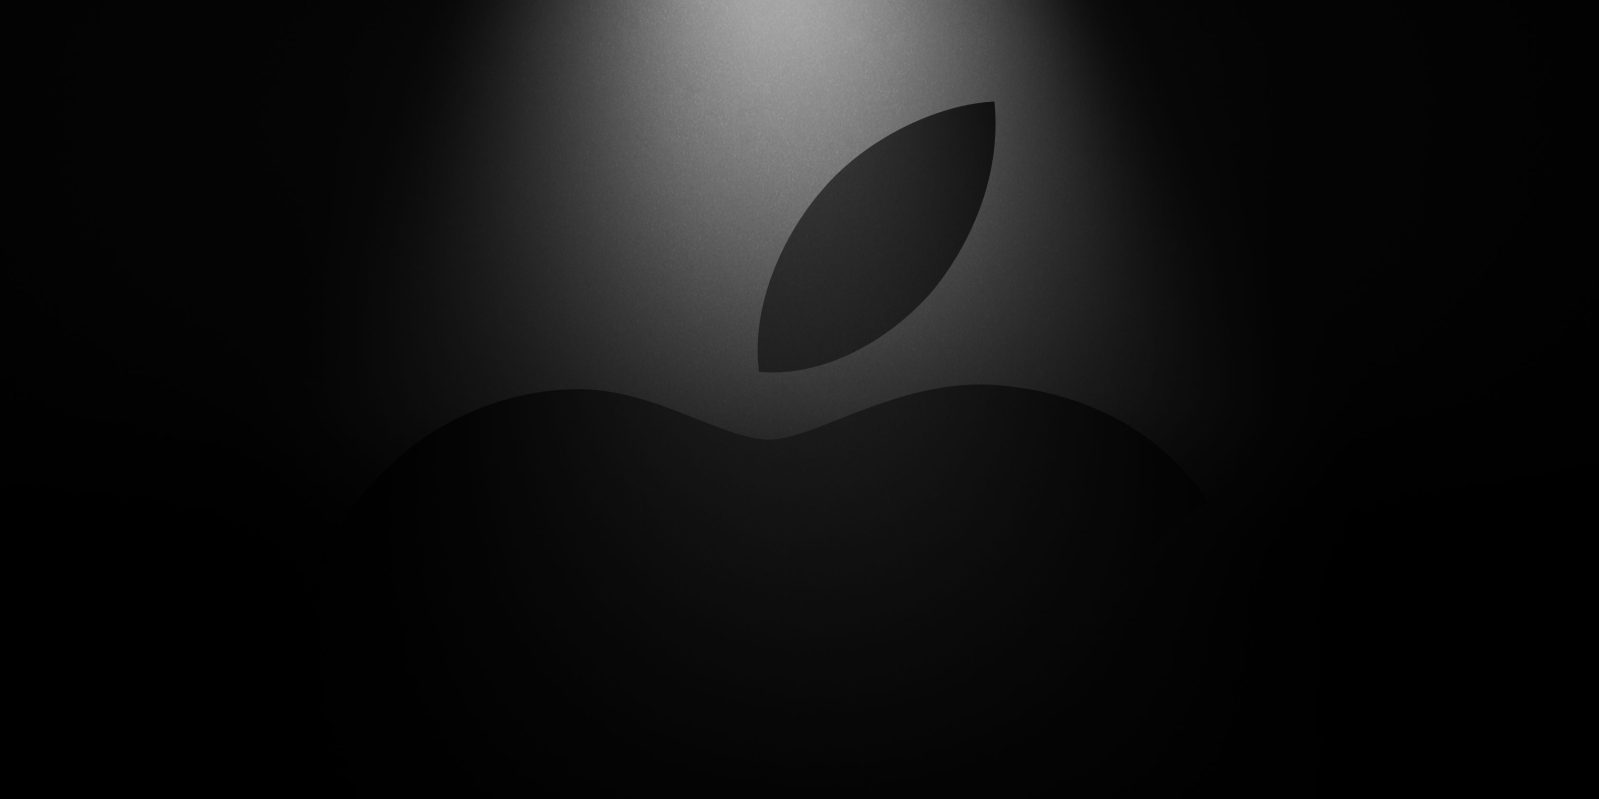 Apple annuncia ufficialmente l'evento del 25 Marzo: It's Showtime